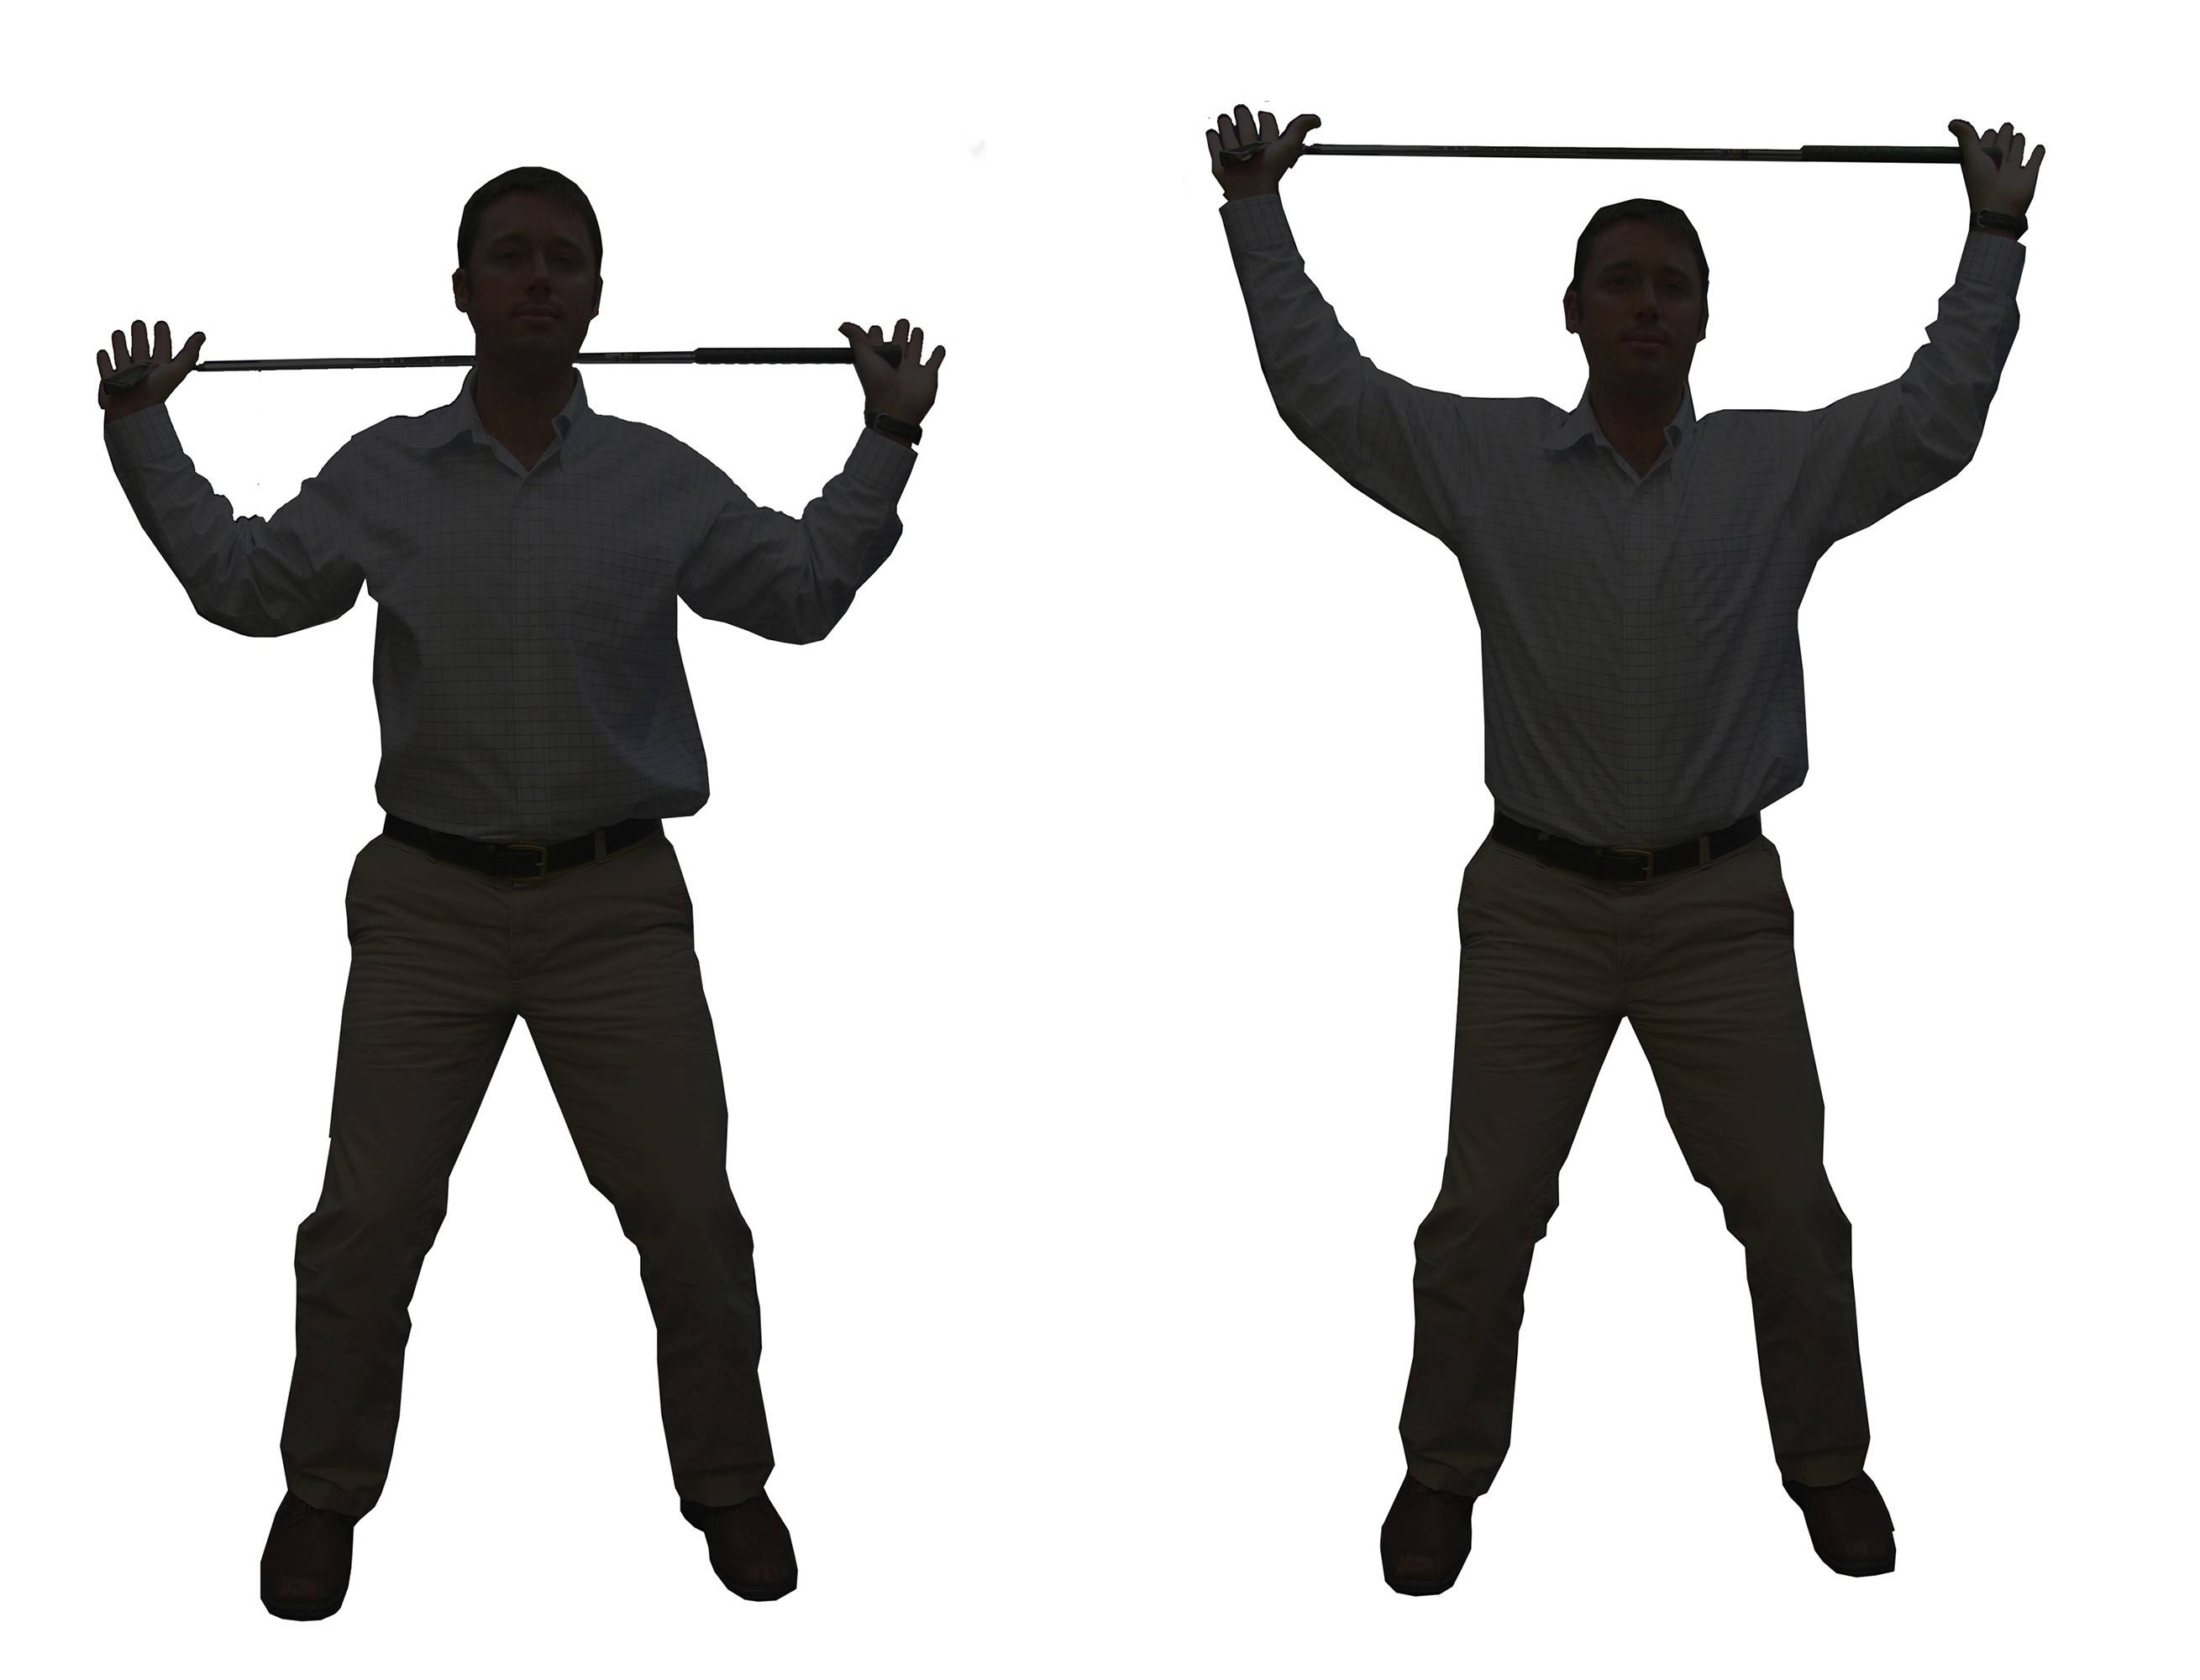 For your shoulders and swing posture: Place the club above your head with your elbows pointing down. Keeping your shoulders down, raise the club for three sets of 10.